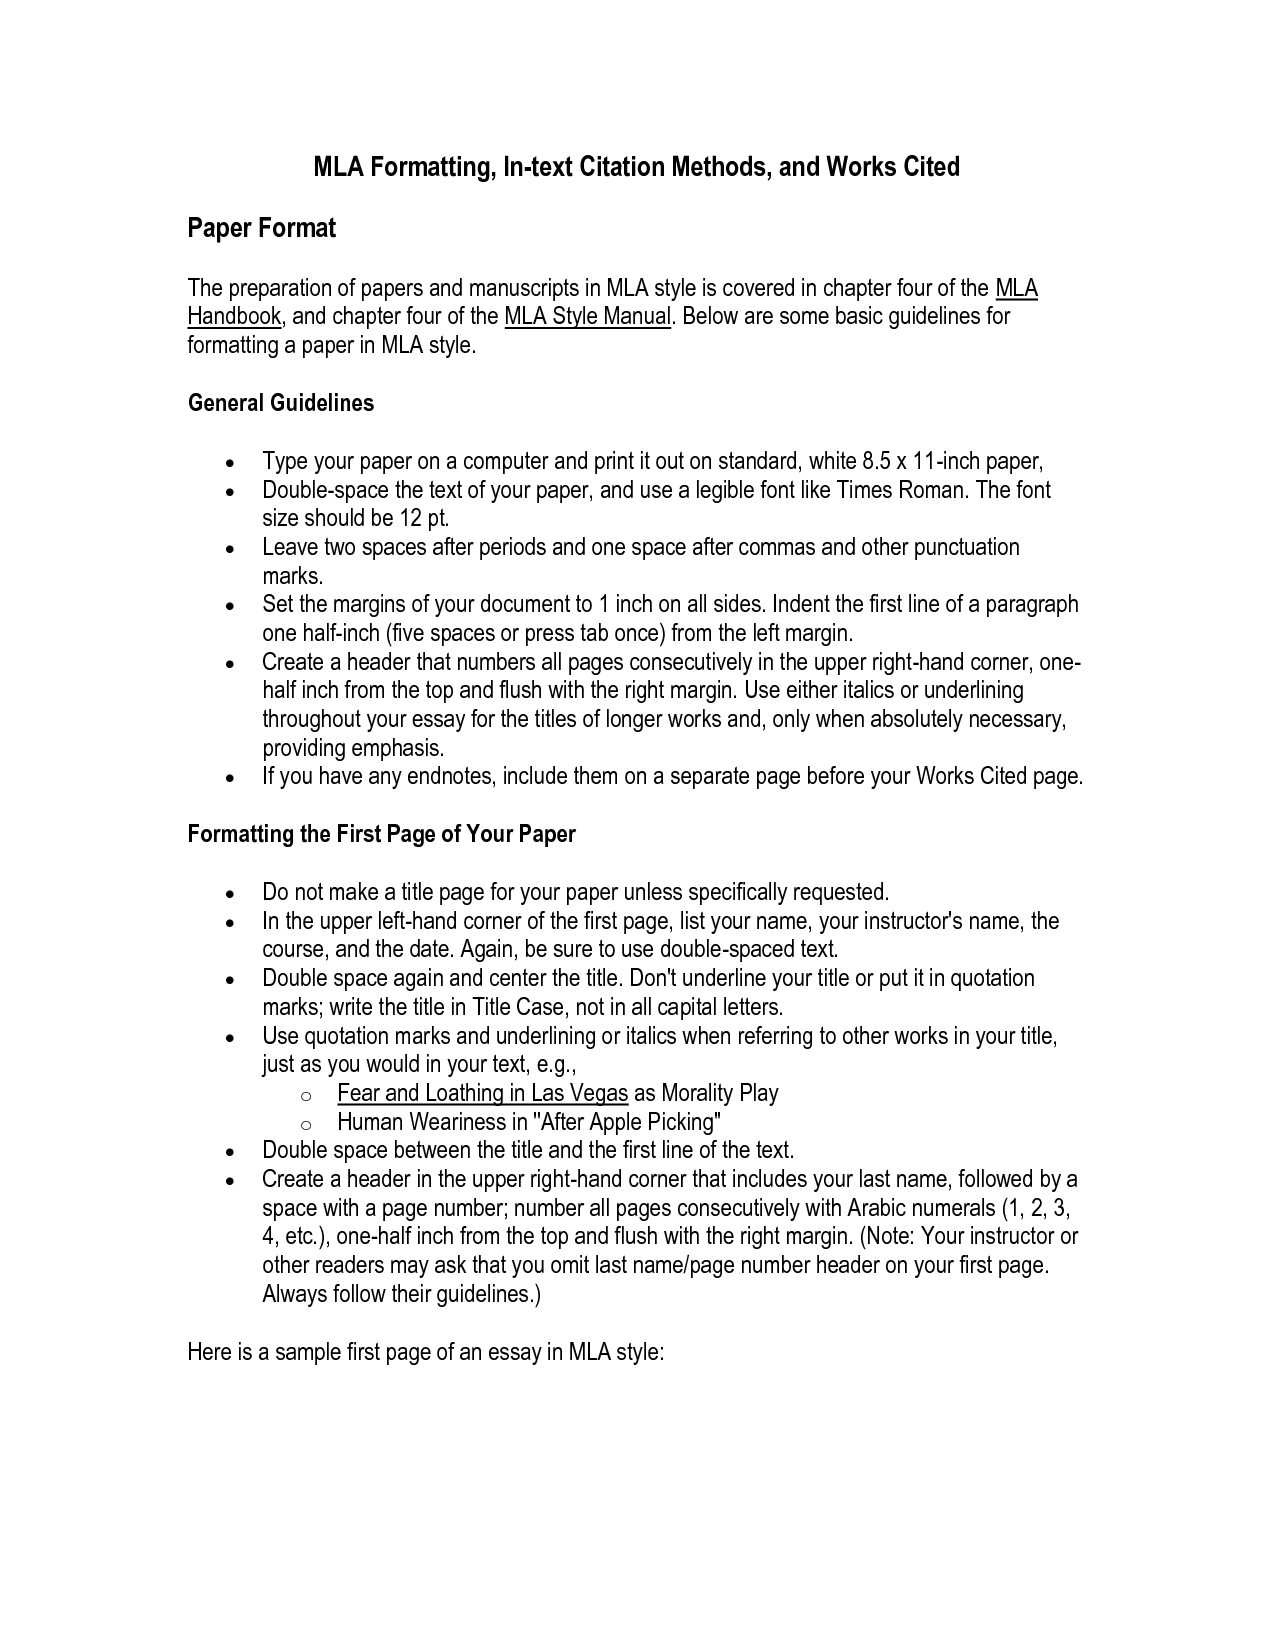 014 How To Cite An Essay In Mla Format Work Cited Example Nardellidesign X Unusual A Paper Research Papers 8 Full